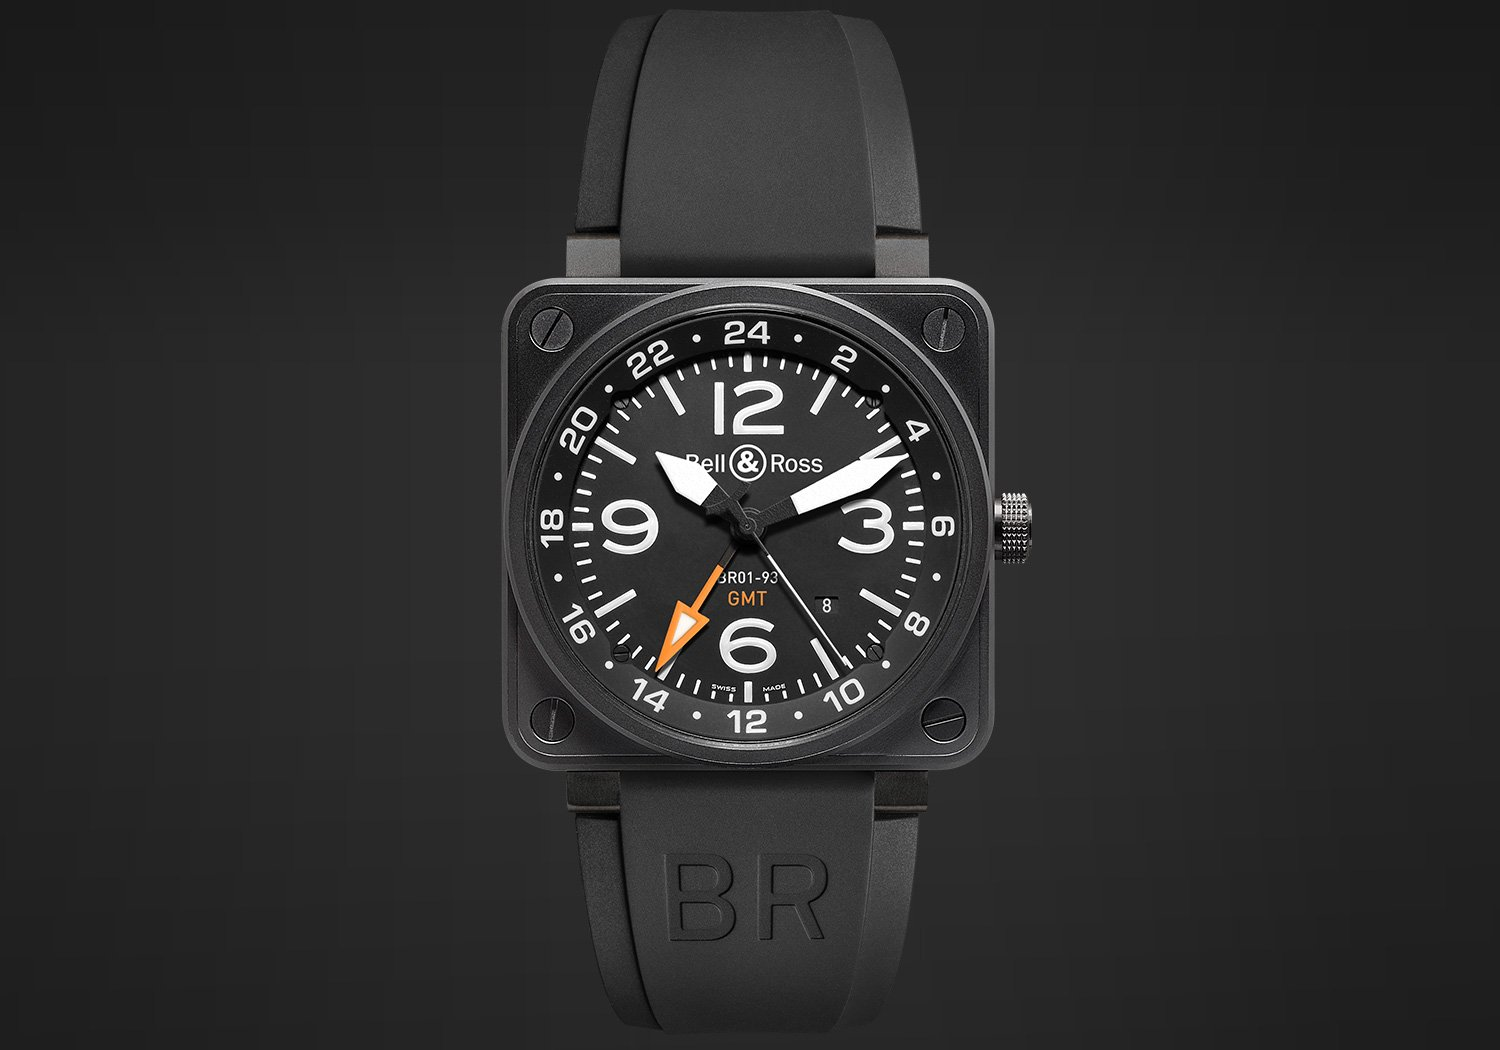 The BR 01 - 93 GMT has a very useful dual time-zone function